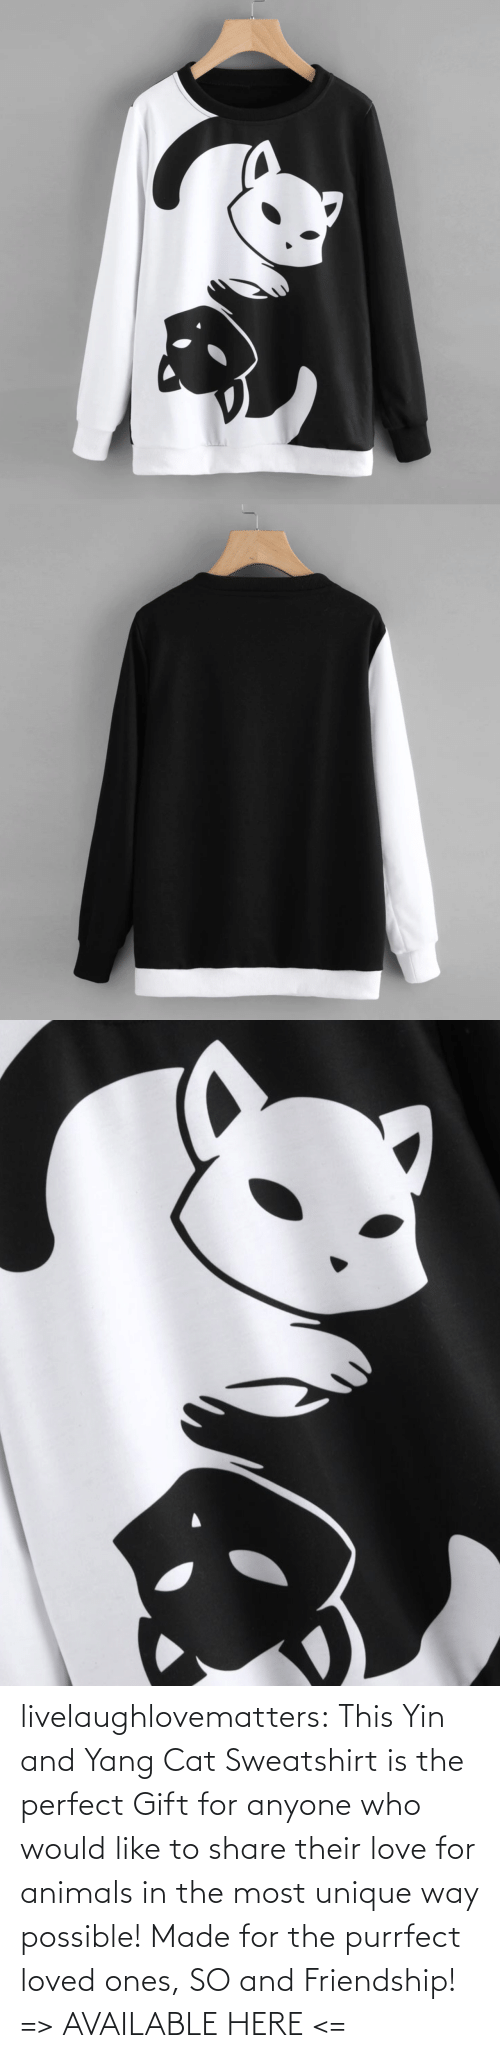 tumblr: livelaughlovematters:  This Yin and Yang Cat Sweatshirt is the perfect Gift for anyone who would like to share their love for animals in the most unique way possible! Made for the purrfect loved ones, SO and Friendship!  => AVAILABLE HERE <=